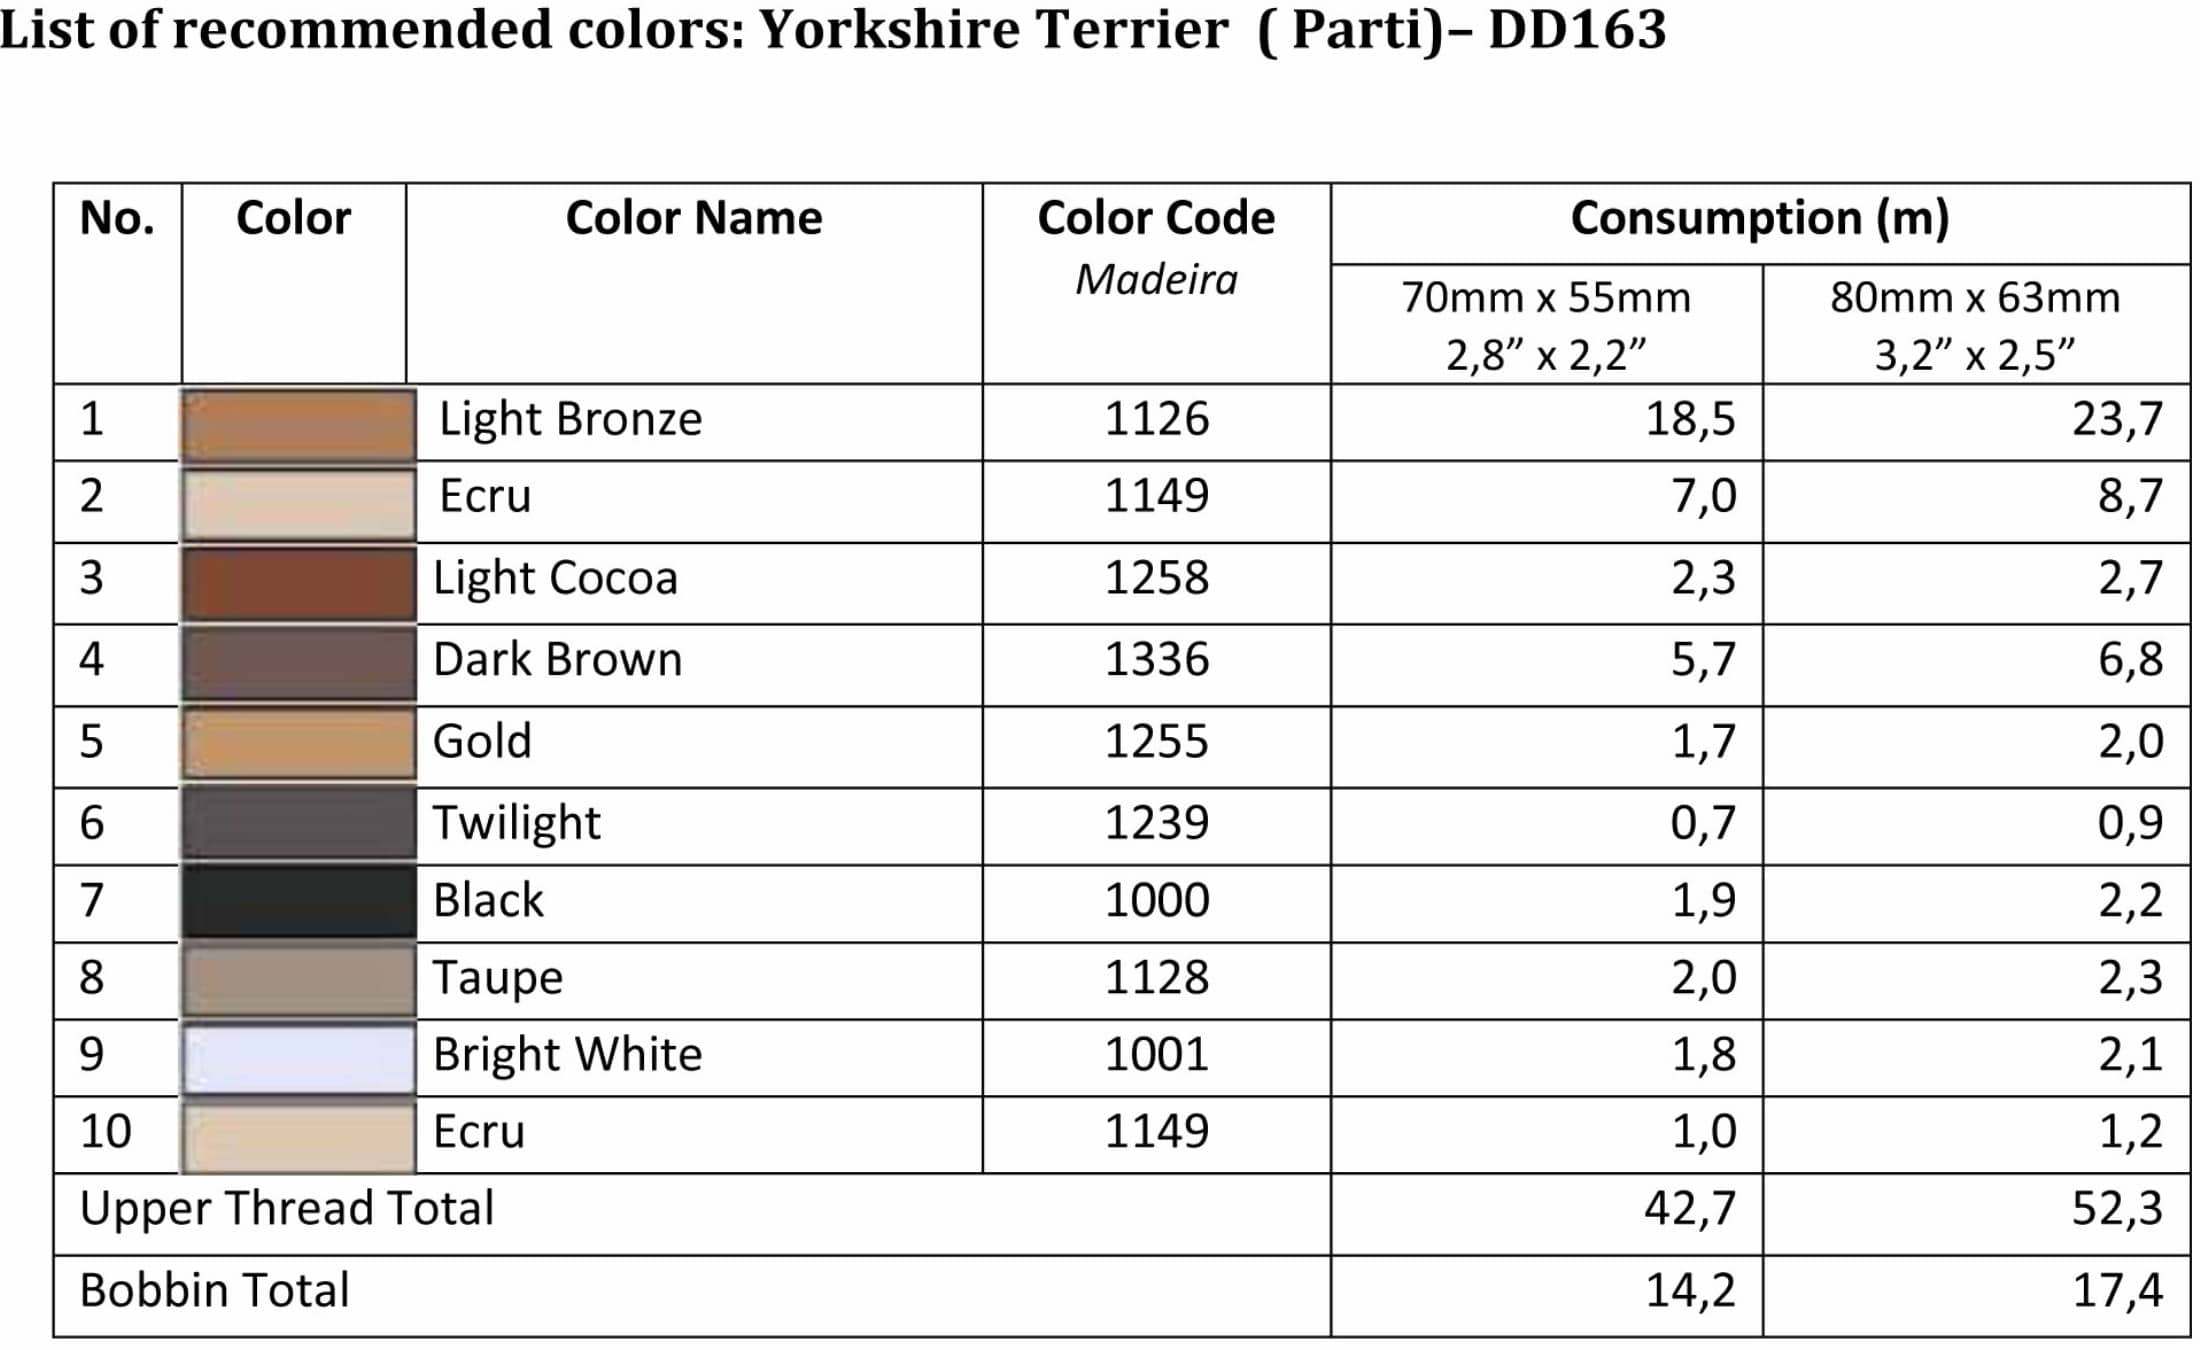 List of recommended colors - DD163